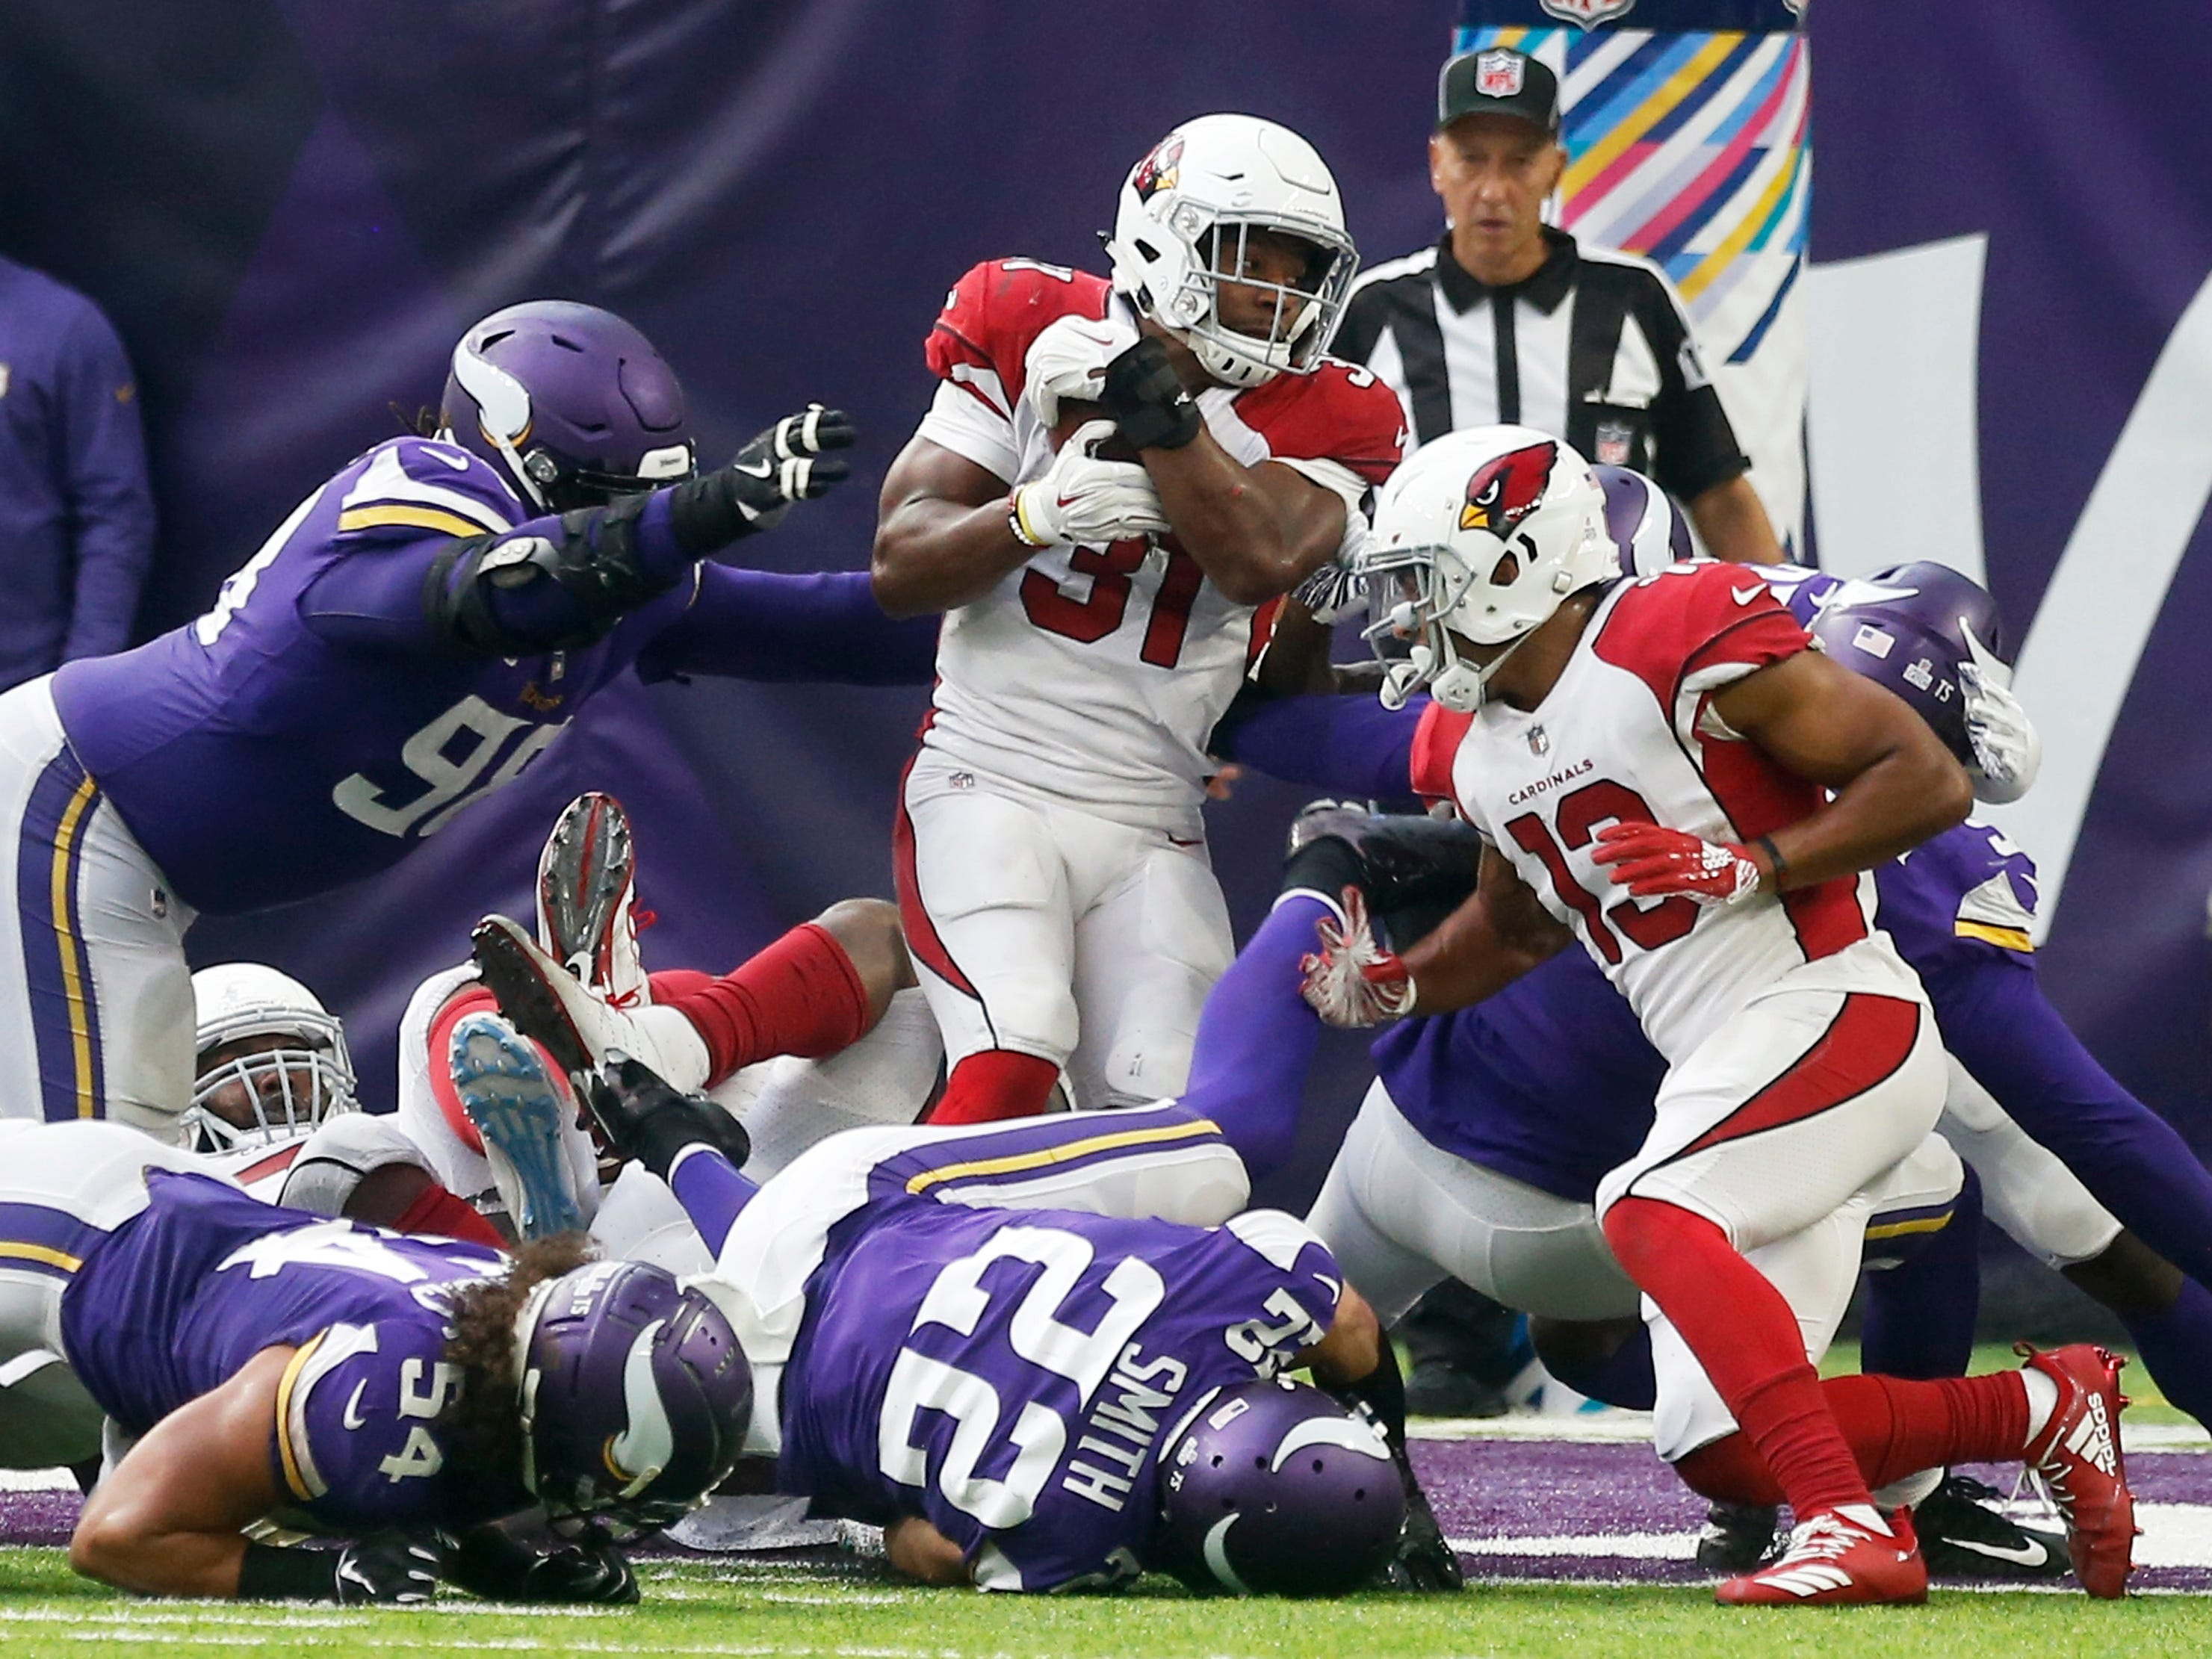 Arizona Cardinals running back David Johnson (31) scores on a 1-yard touchdown run ahead of Minnesota Vikings defensive tackle Linval Joseph, left, during the second half of an NFL football game, Sunday, Oct. 14, 2018, in Minneapolis. (AP Photo/Jim Mone)